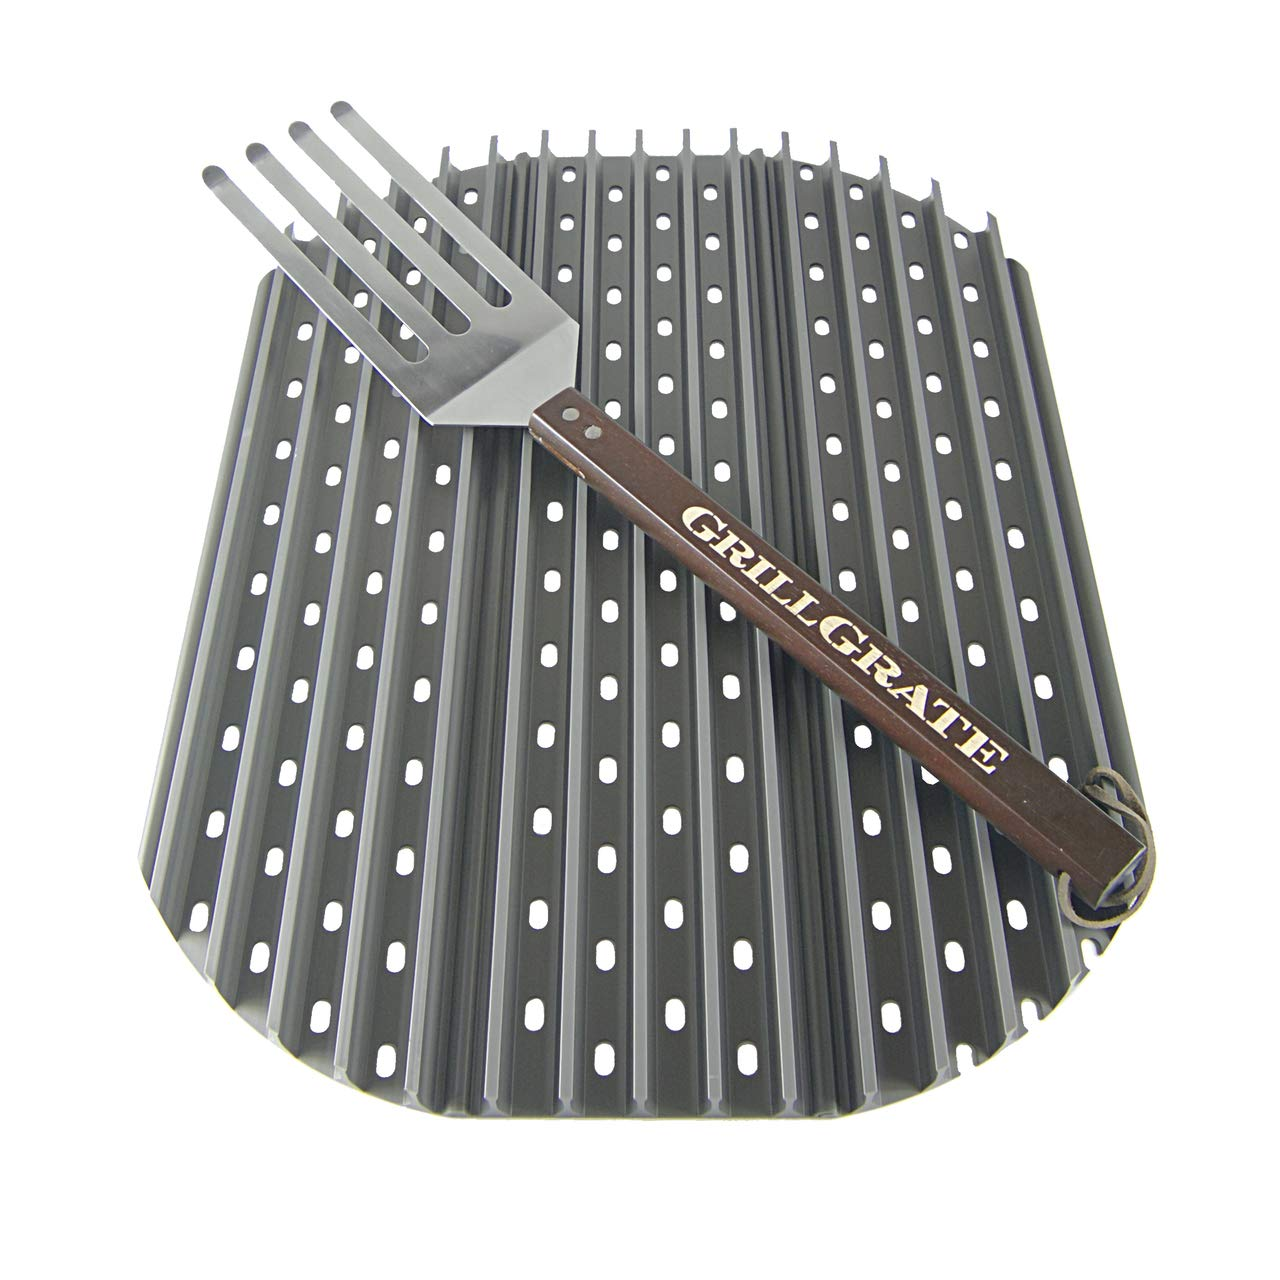 GrillGrates for the 22.5'' Weber Kettle Grill by GrillGrate